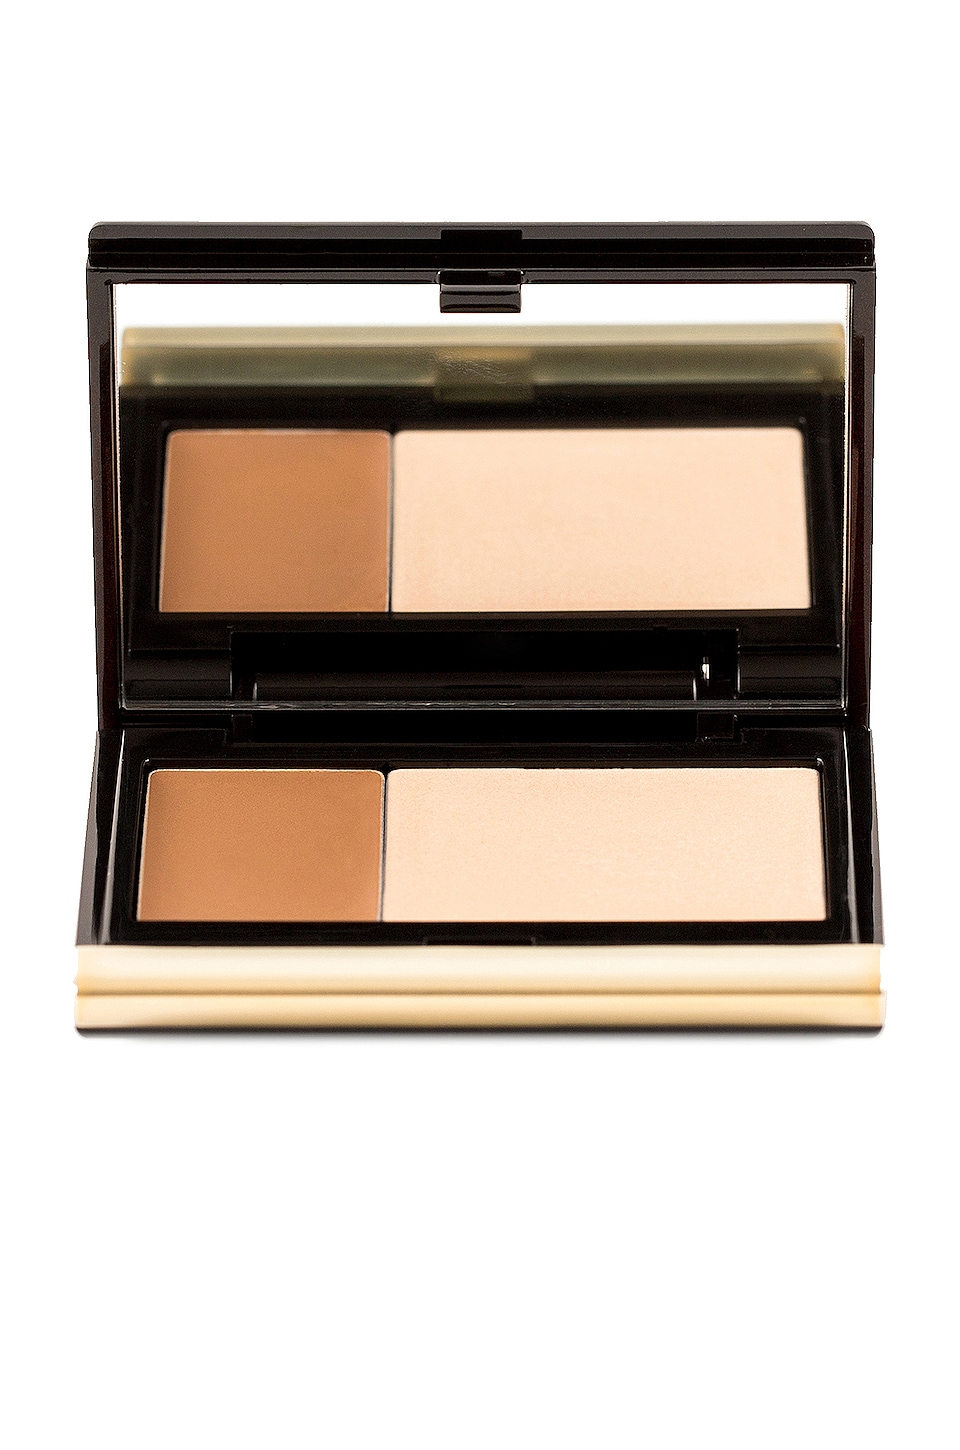 Kevyn Aucoin The Creamy Glow Duo in Medium & Candlelight